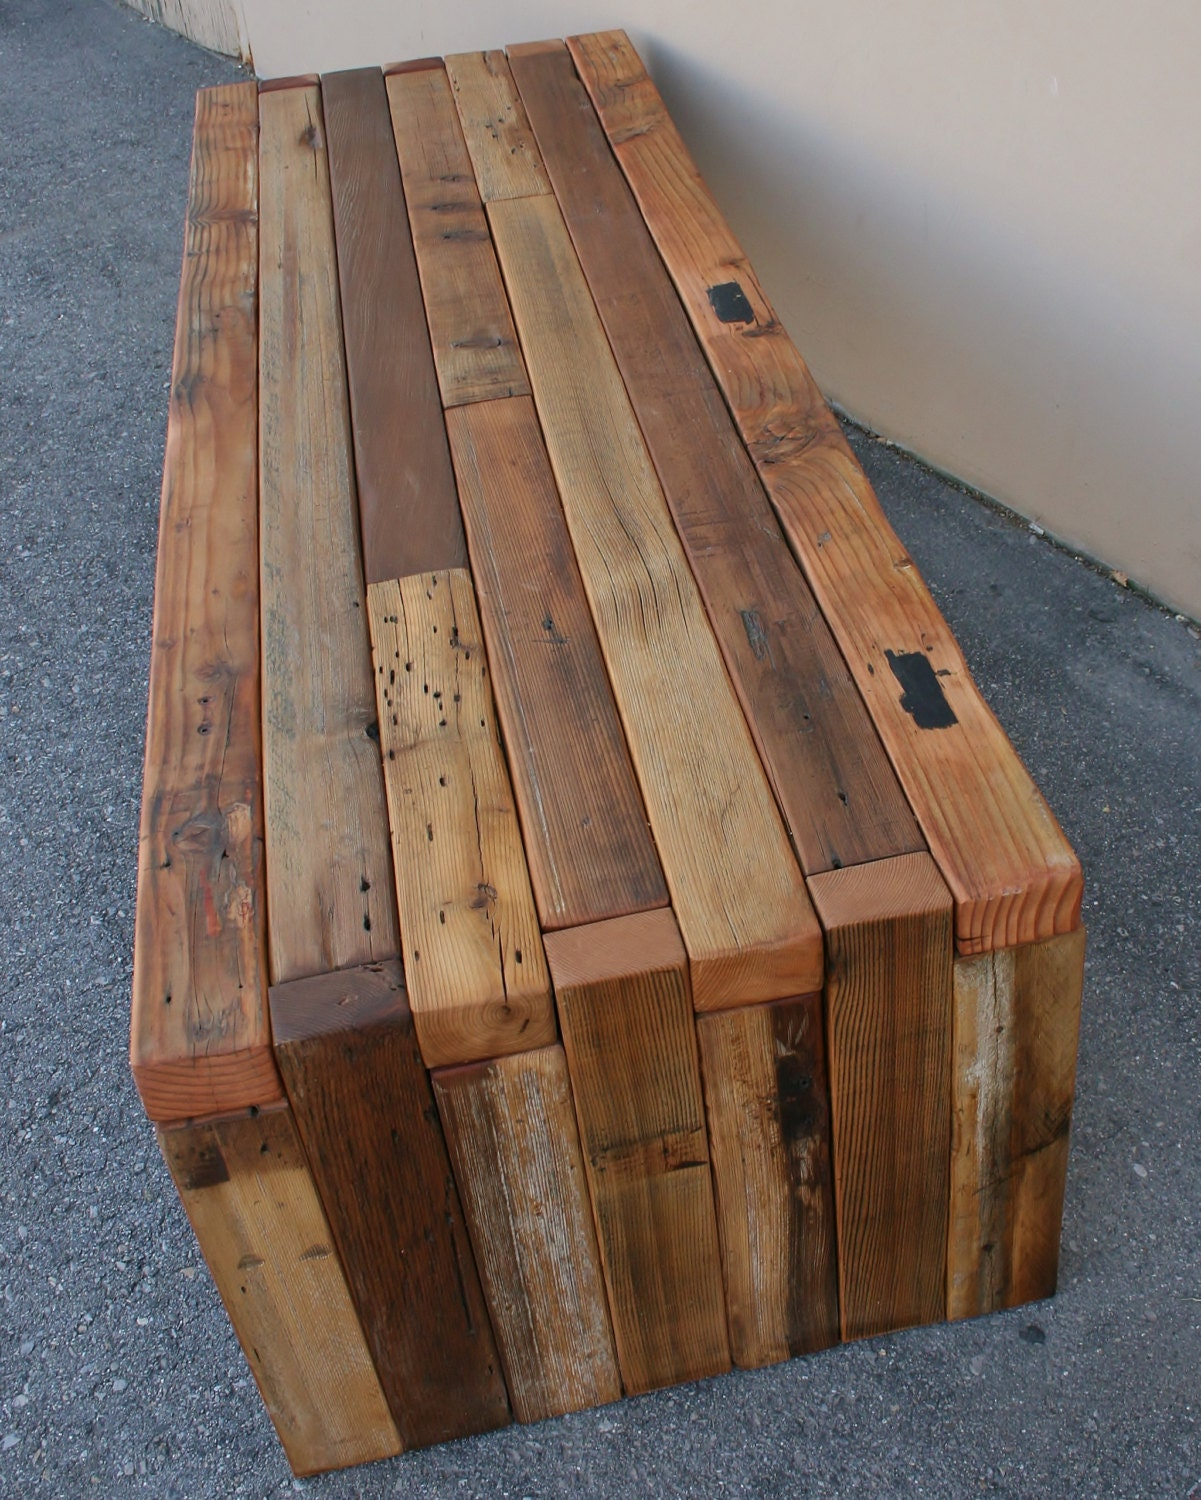 Make A Reclaimed Wood Coffee Table: The Urbane Bench/Coffee Table Made From Reclaimed Cedar